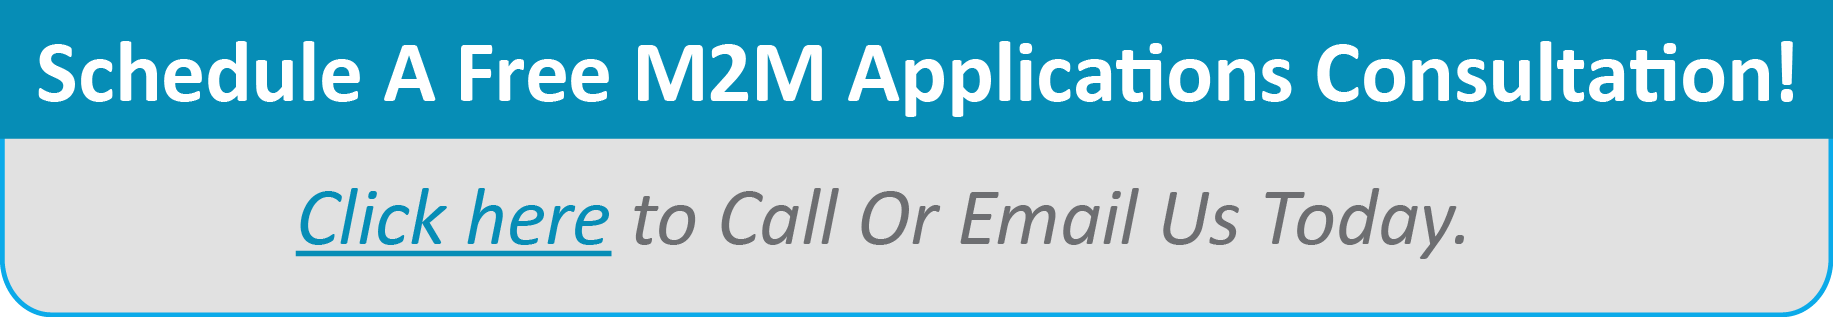 Schedule_a_free_IoT_m2m_applications_consultation440x76px